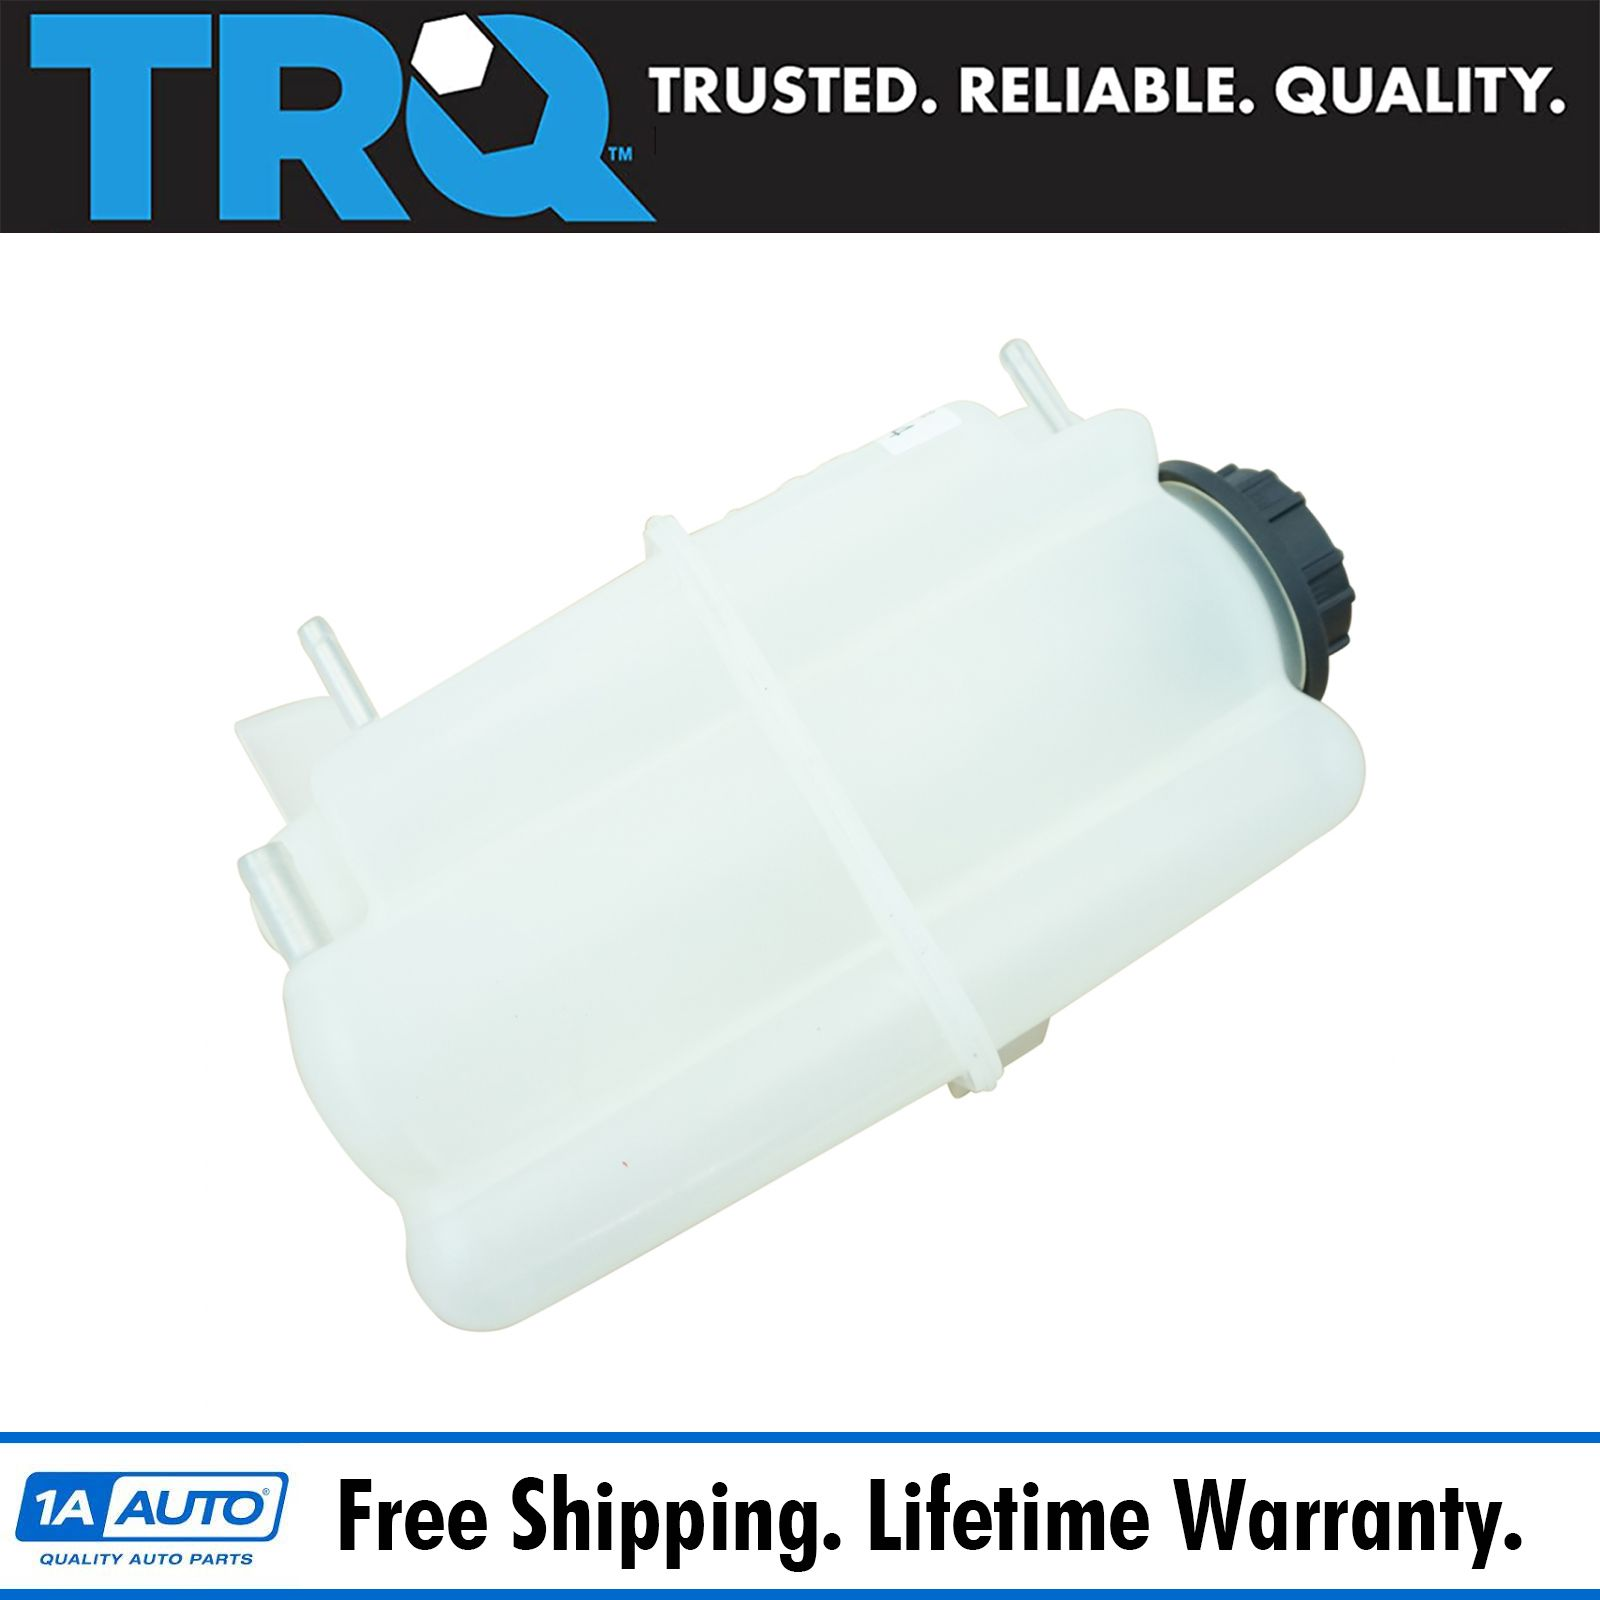 Engine Coolant Recovery Tank Radiator Overflow Bottle For Nissan Armada Qx56